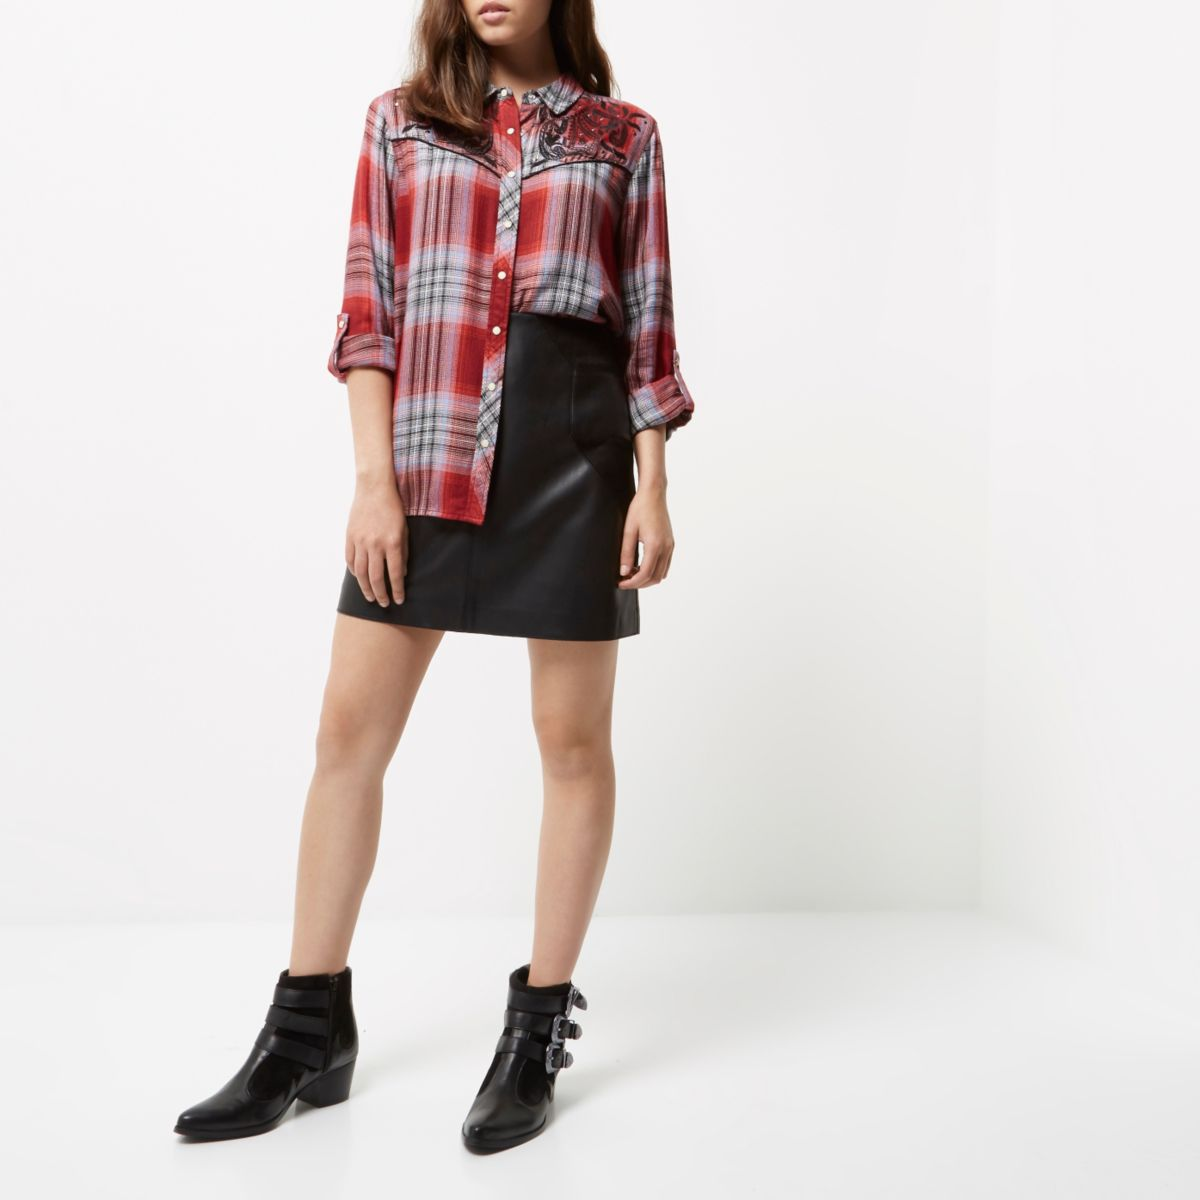 Petite red check embroidered western shirt